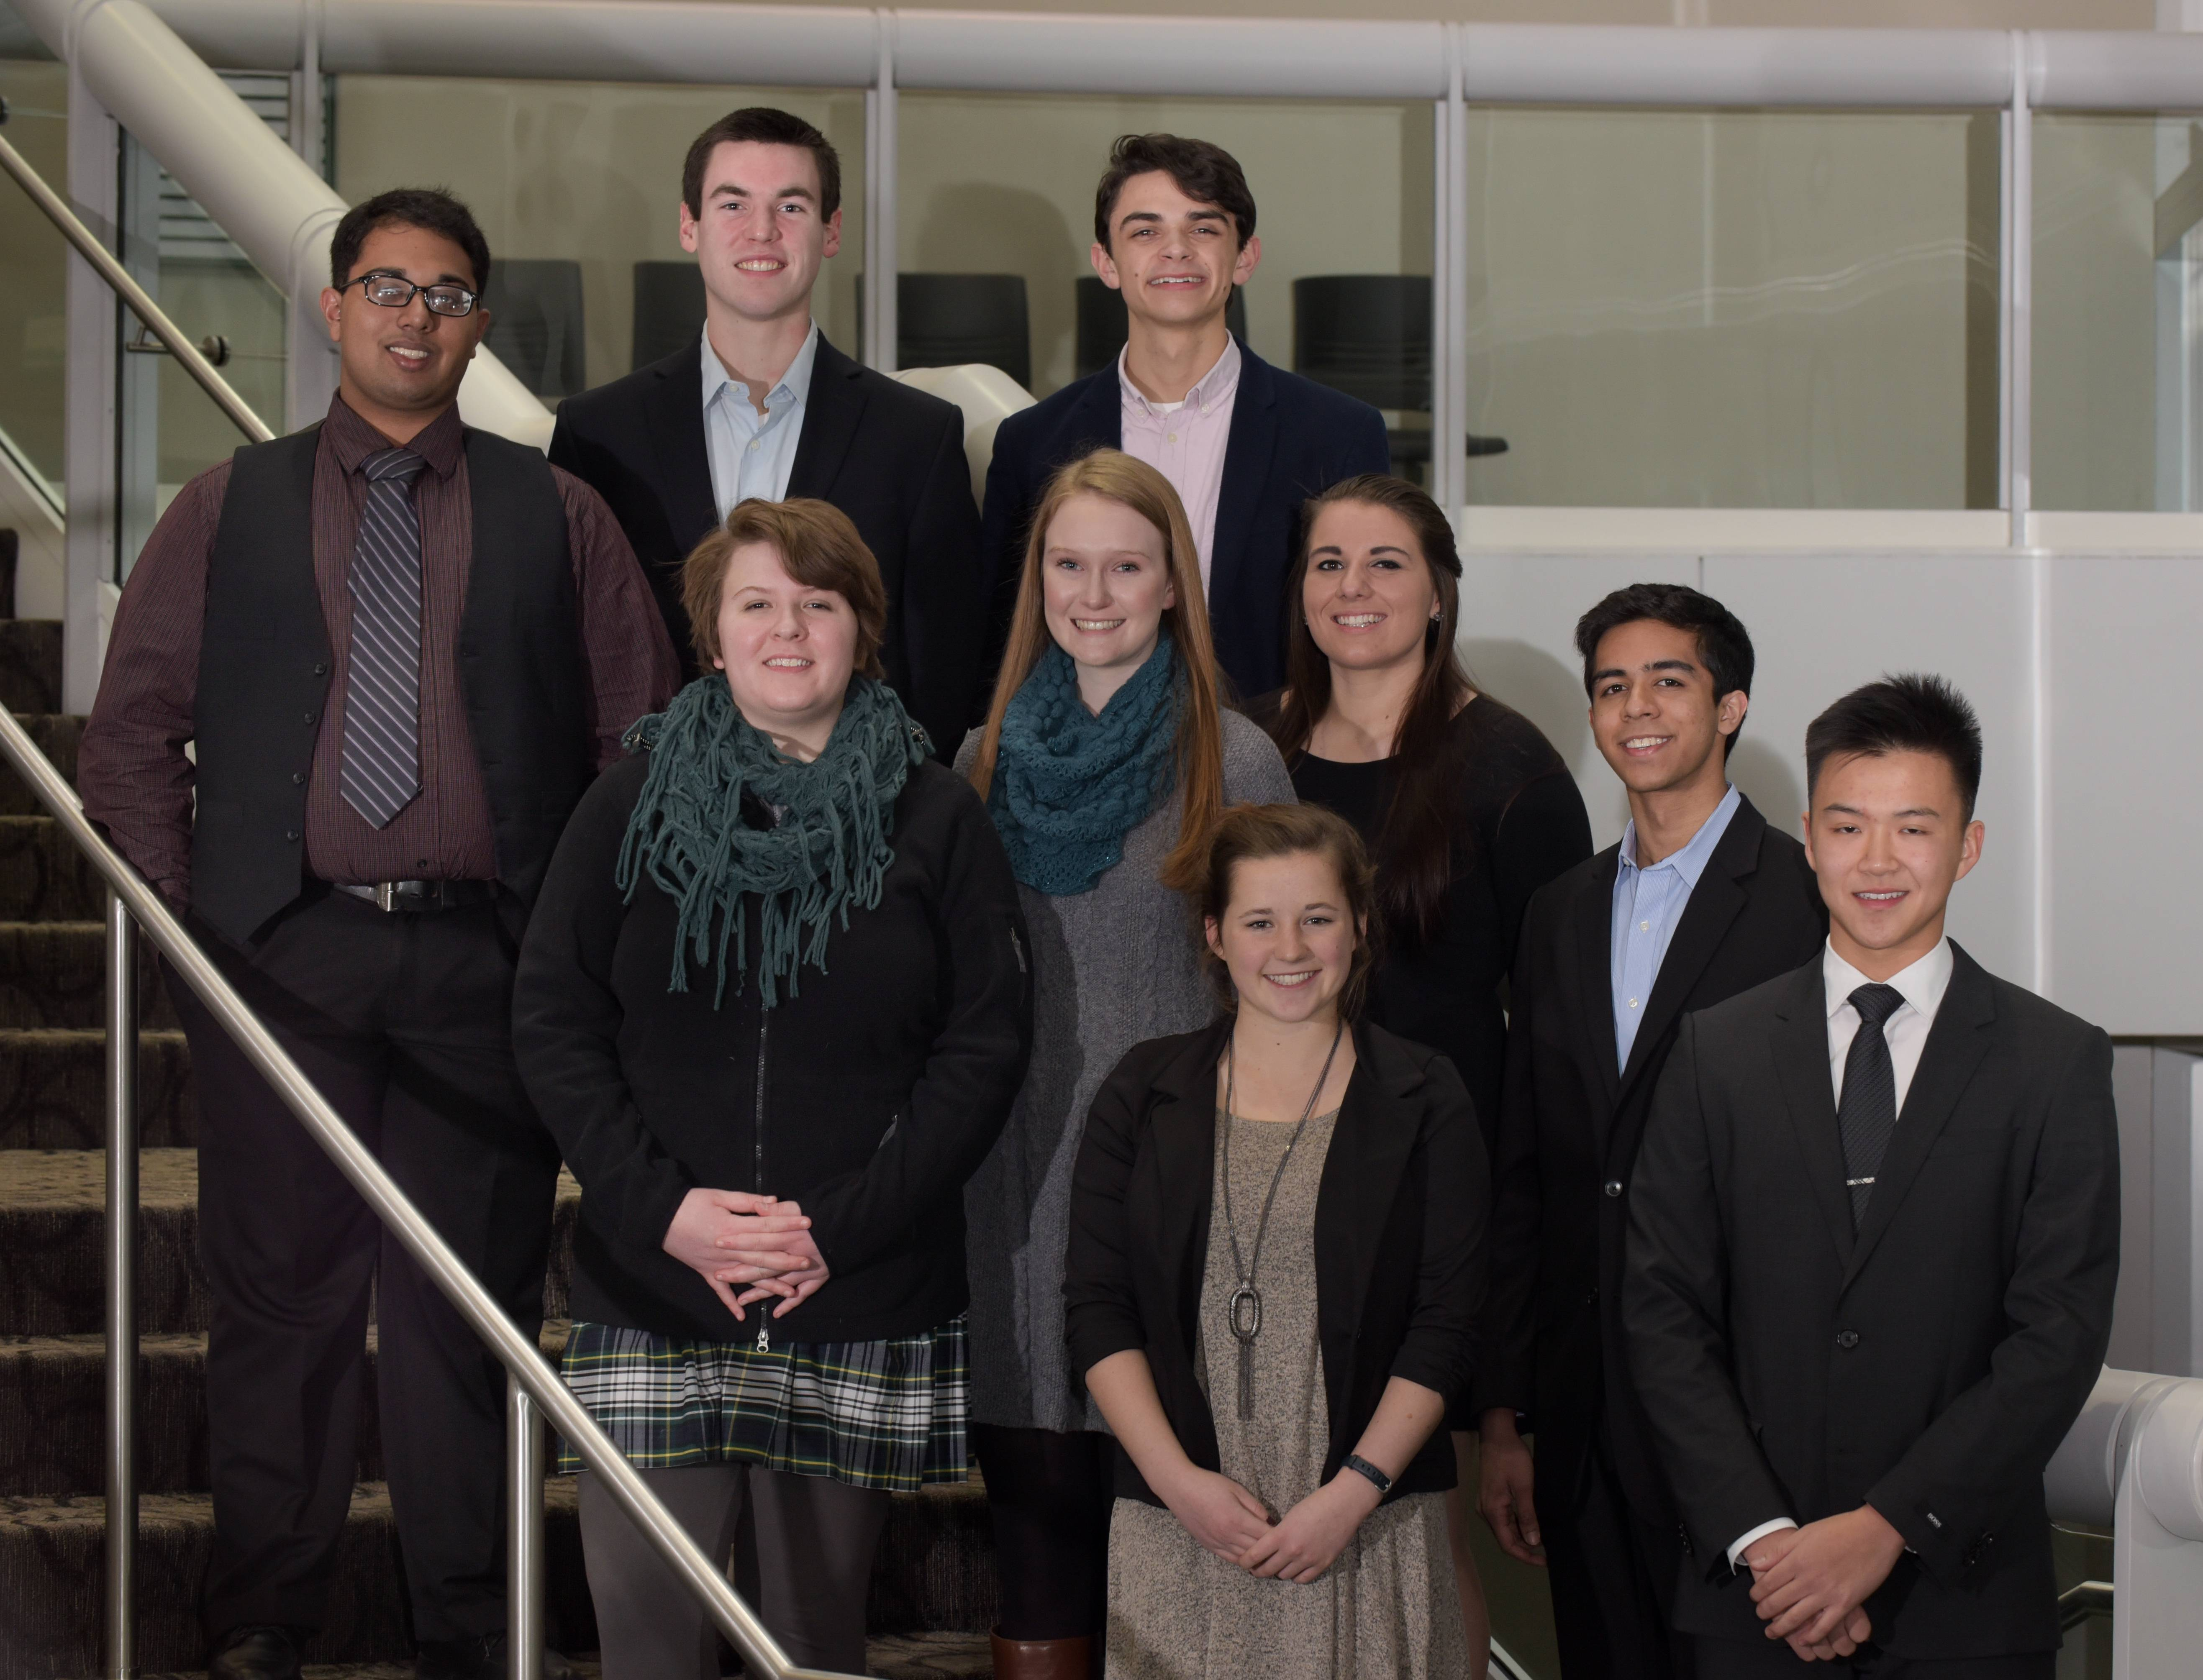 Winners of the 2015-16 DuPage County Leadership Team gather at College of DuPage. Top row, from left: Mohit Patel, Fenton High School; Michael King, Glenbard South High School; and William Marchese, Wheaton North High School. Middle row, from left: Nicole Popow, St. Francis High School; Claire Larkin, Glenbard East High School; Francesca Sikora, Montini Catholic High School and Tushar Dwivedi, Neuqua Valley High School. In front, Kyra Conroy, Naperville Central High School and David Kwok, Hinsdale Central High School. Not pictured: Alice Cecilia Reid, Benet Academy.